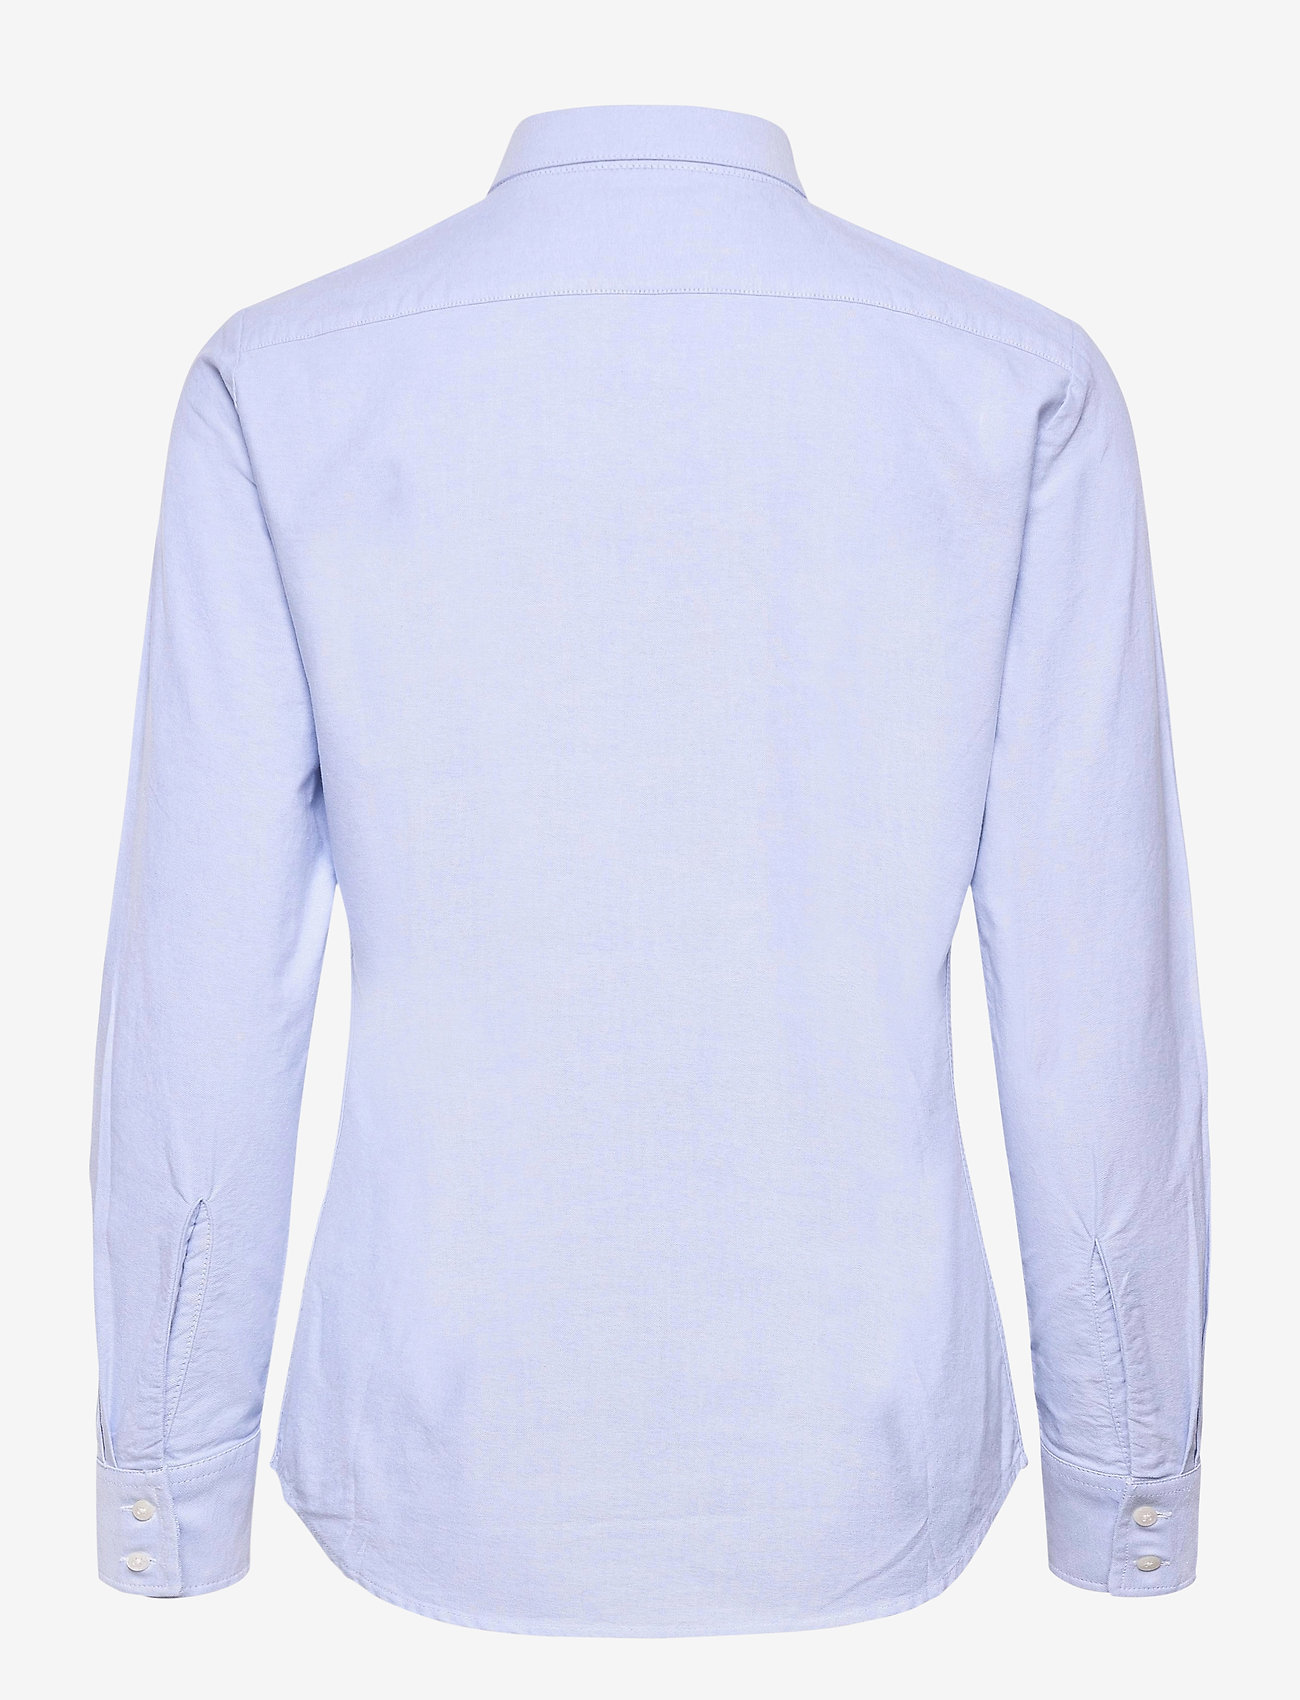 Musto - OXF LS SHIRT FW - long-sleeved shirts - 600 pale blue - 1